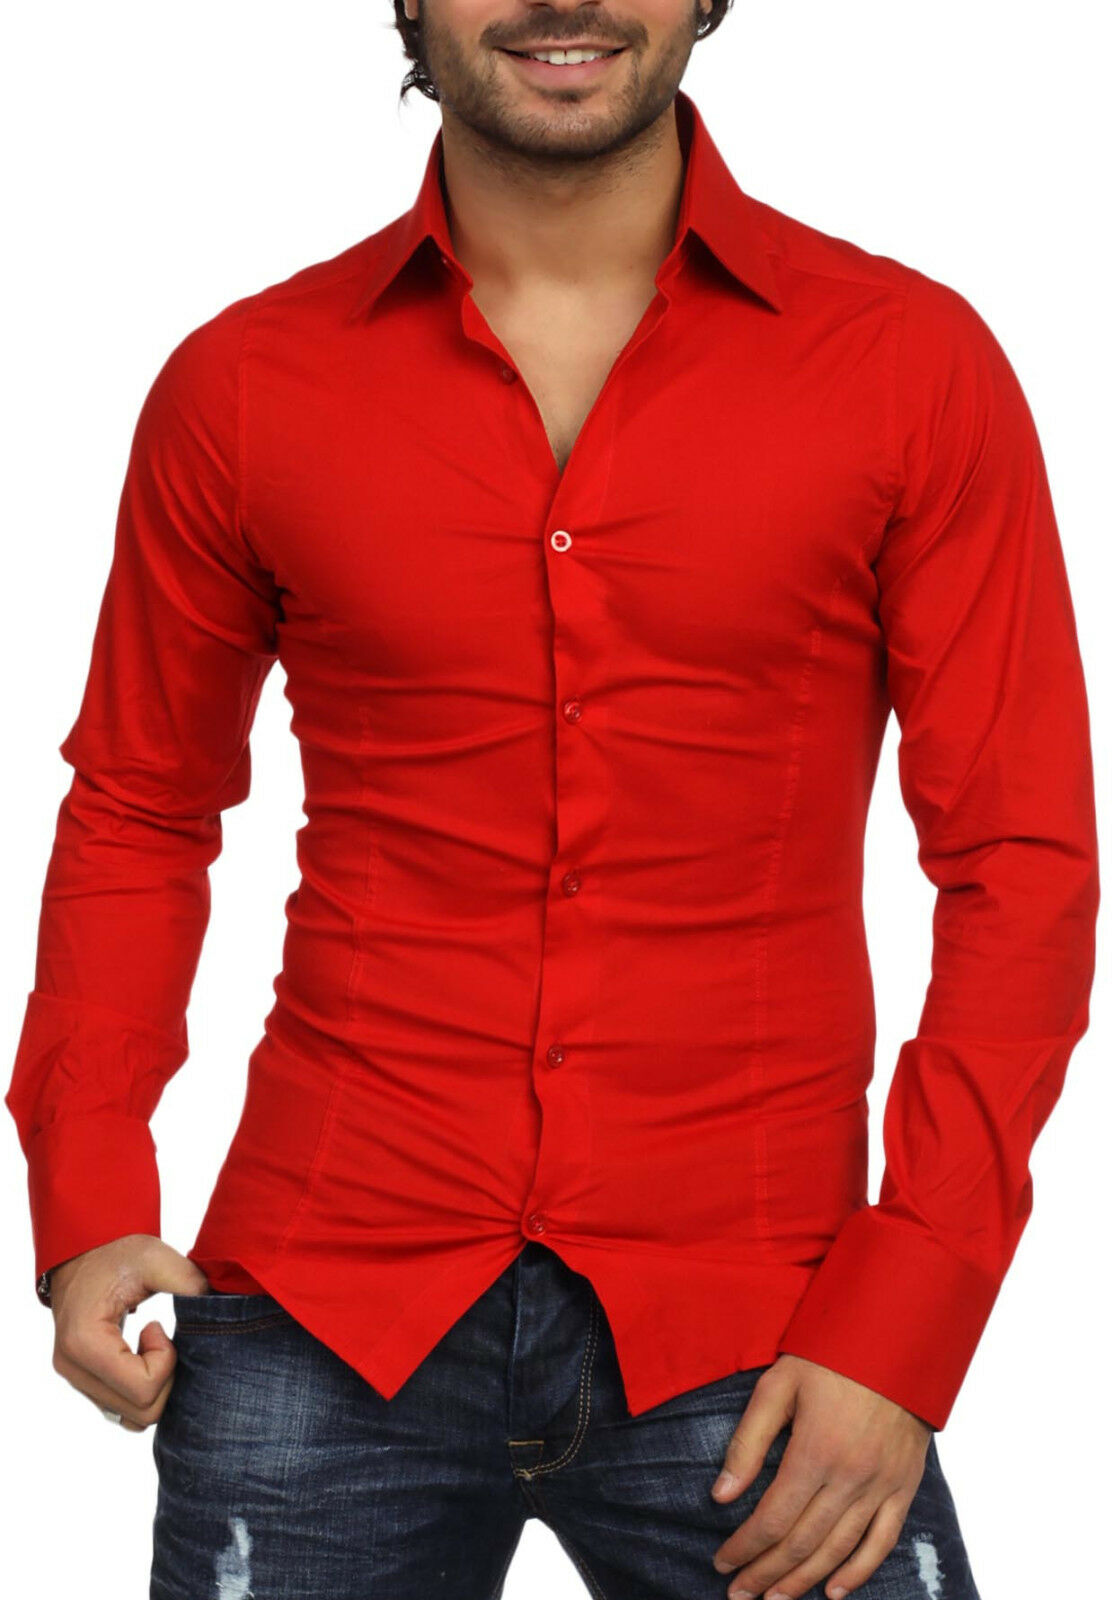 Rossa - Red Men's Long Sleeved Shirt Fashion